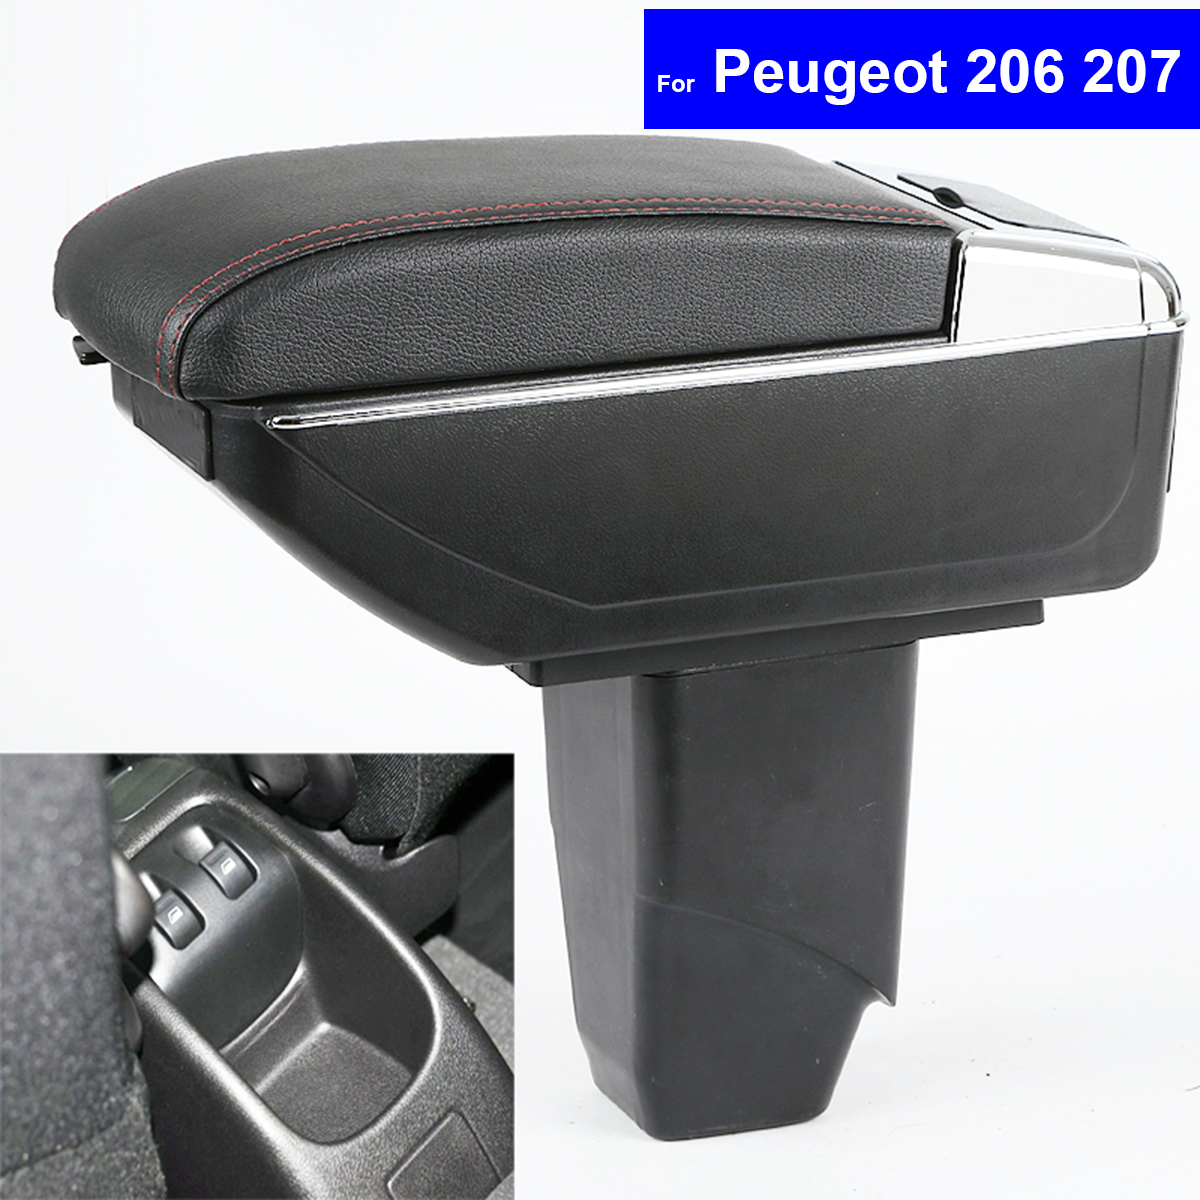 Leather Center Console <font><b>Armrest</b></font> Storage Box for <font><b>Peugeot</b></font> <font><b>206</b></font> 2005~2008 / <font><b>Peugeot</b></font> 207 2008 2009 2010 ~2013 <font><b>Armrests</b></font> Free Shipping image